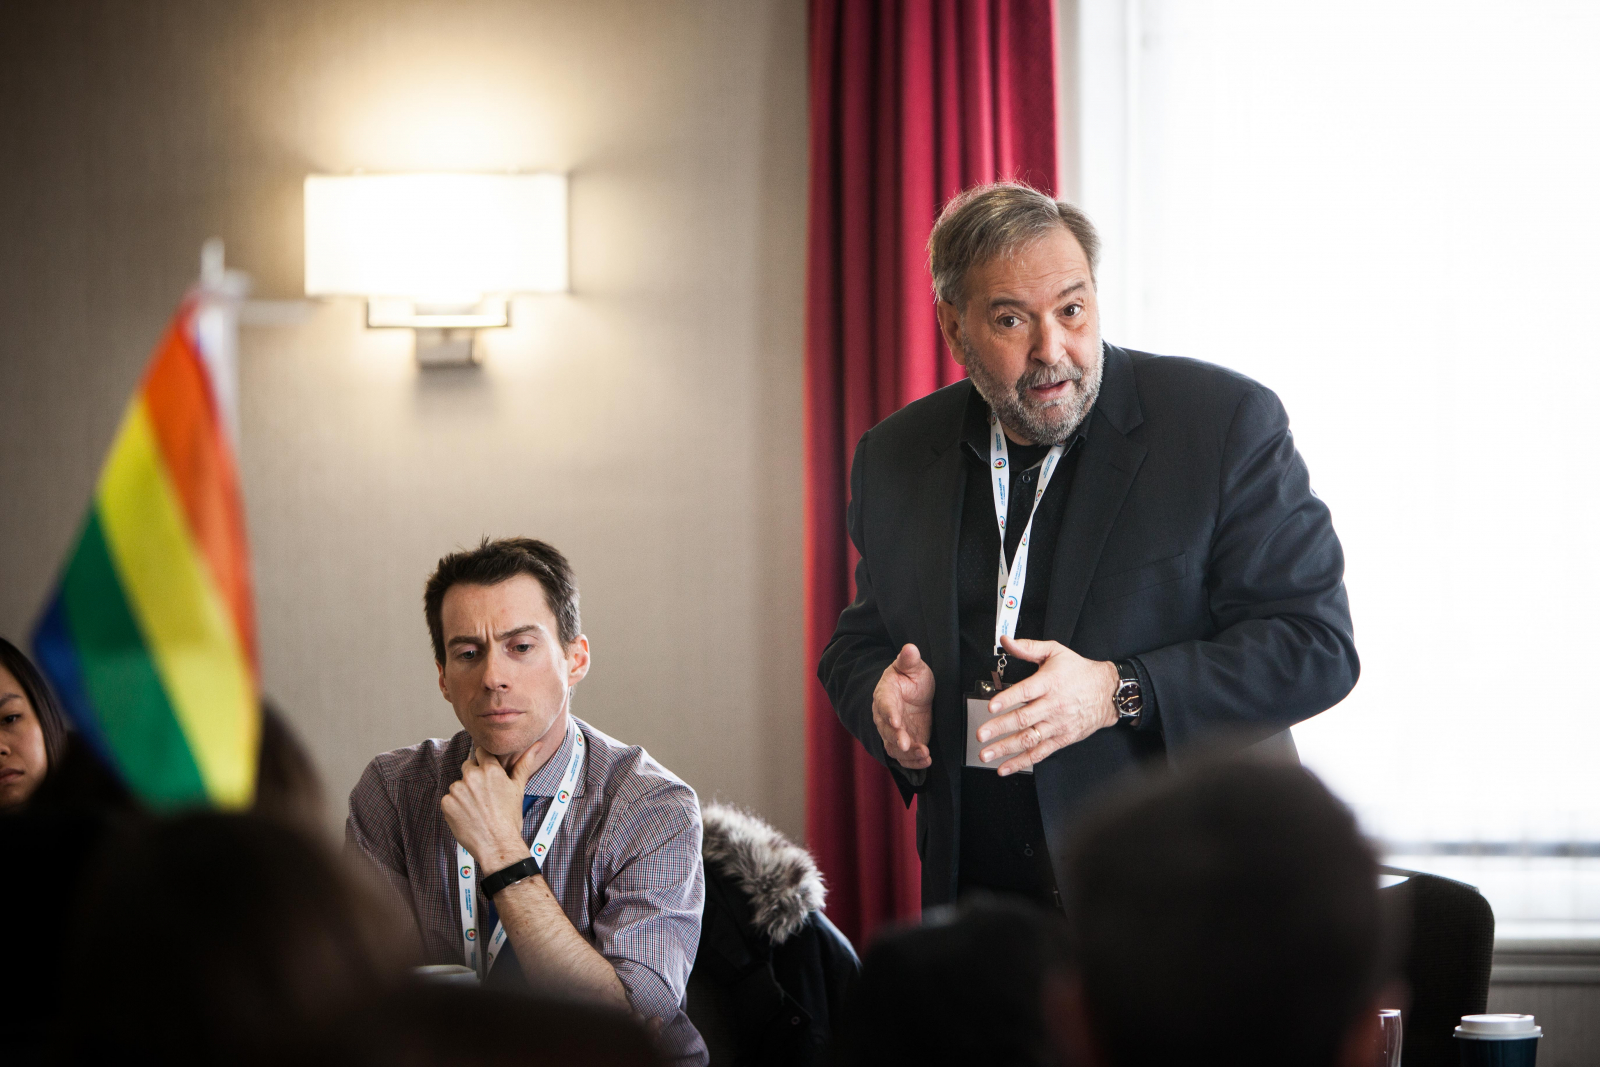 Thomas Mulcair, Gatineau, Quebec Community Groups Network, New Democratic Party of Canada, NDP, Nick Gamache, CBC, The House